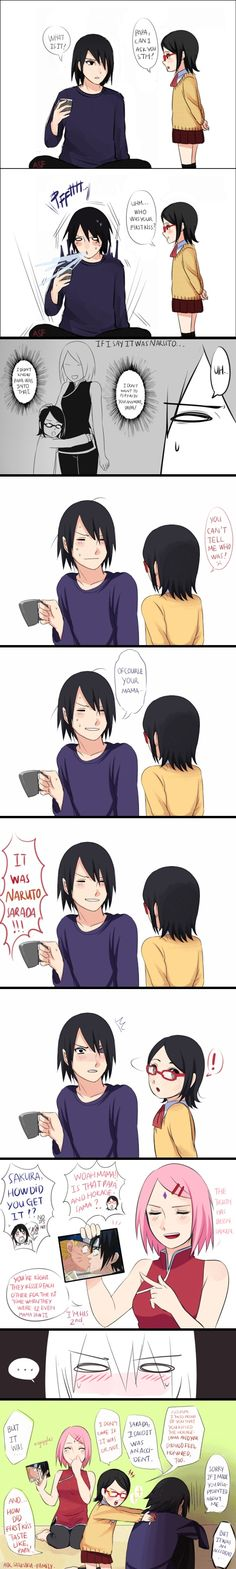 Sasuke Sakura Sarada Pffft! Omg this is Hilarious! XD Sarada is so weird XD